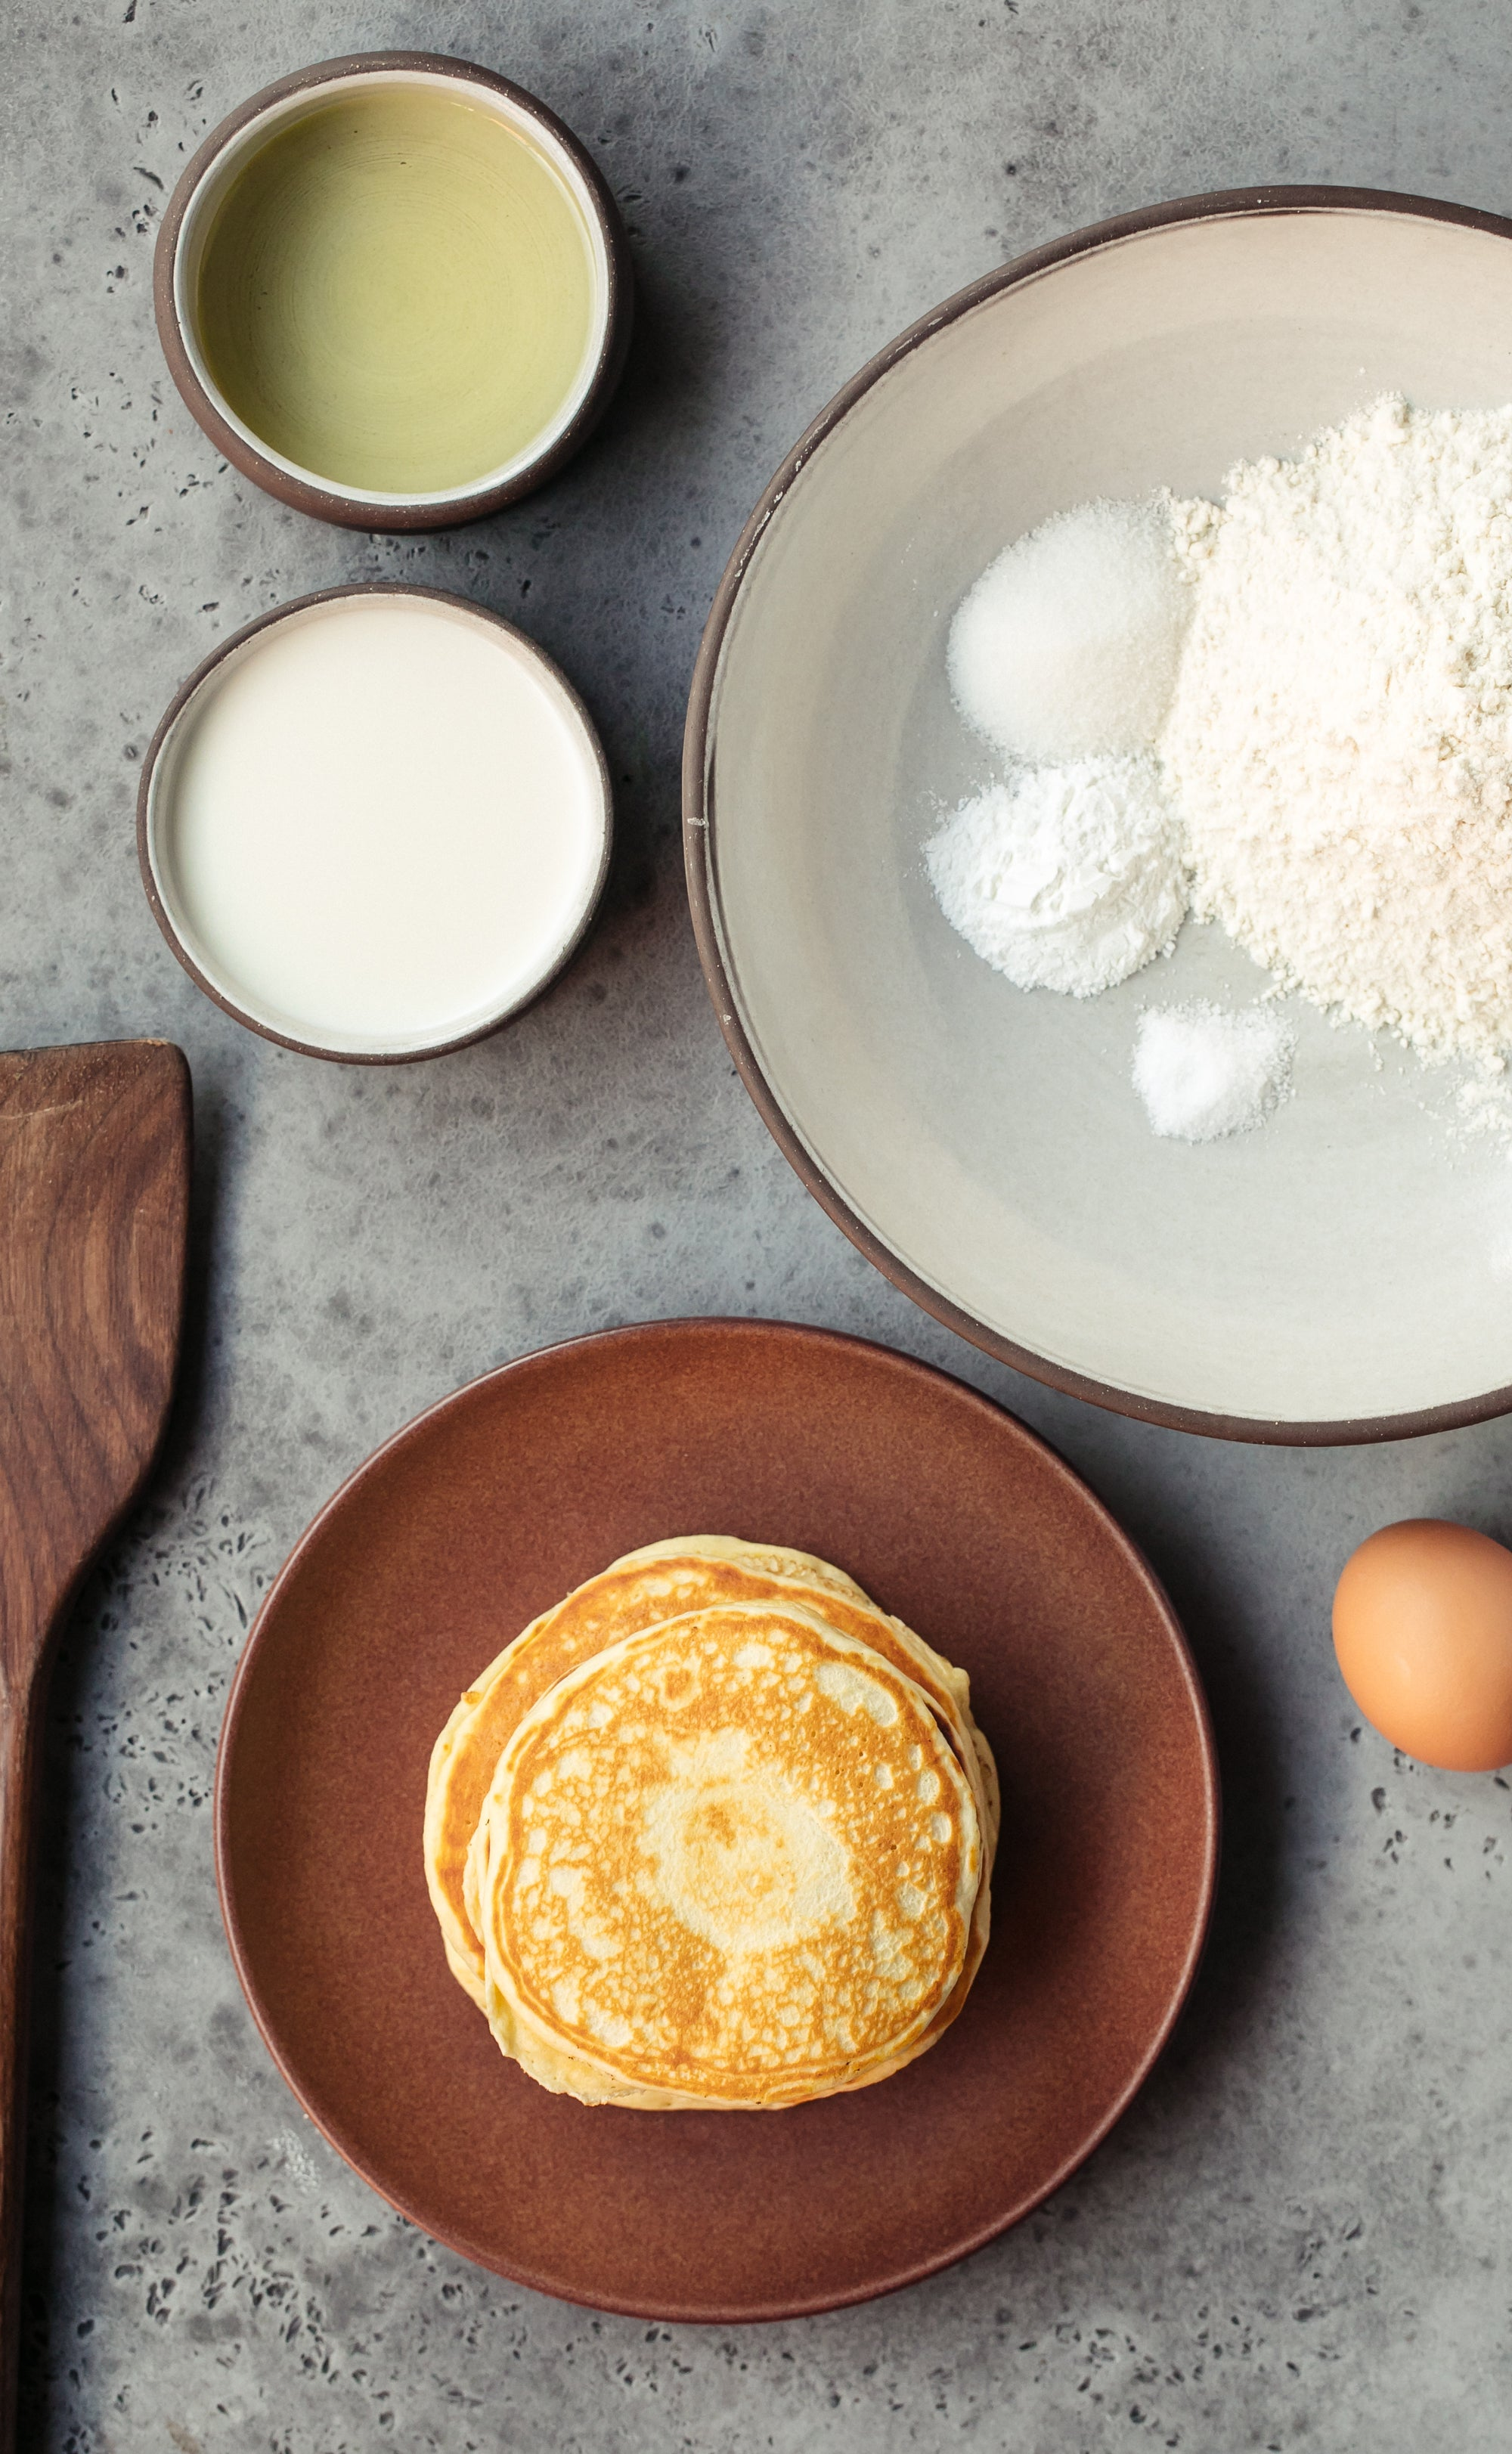 PRINT. Pancakes (Meal Kit for 2)